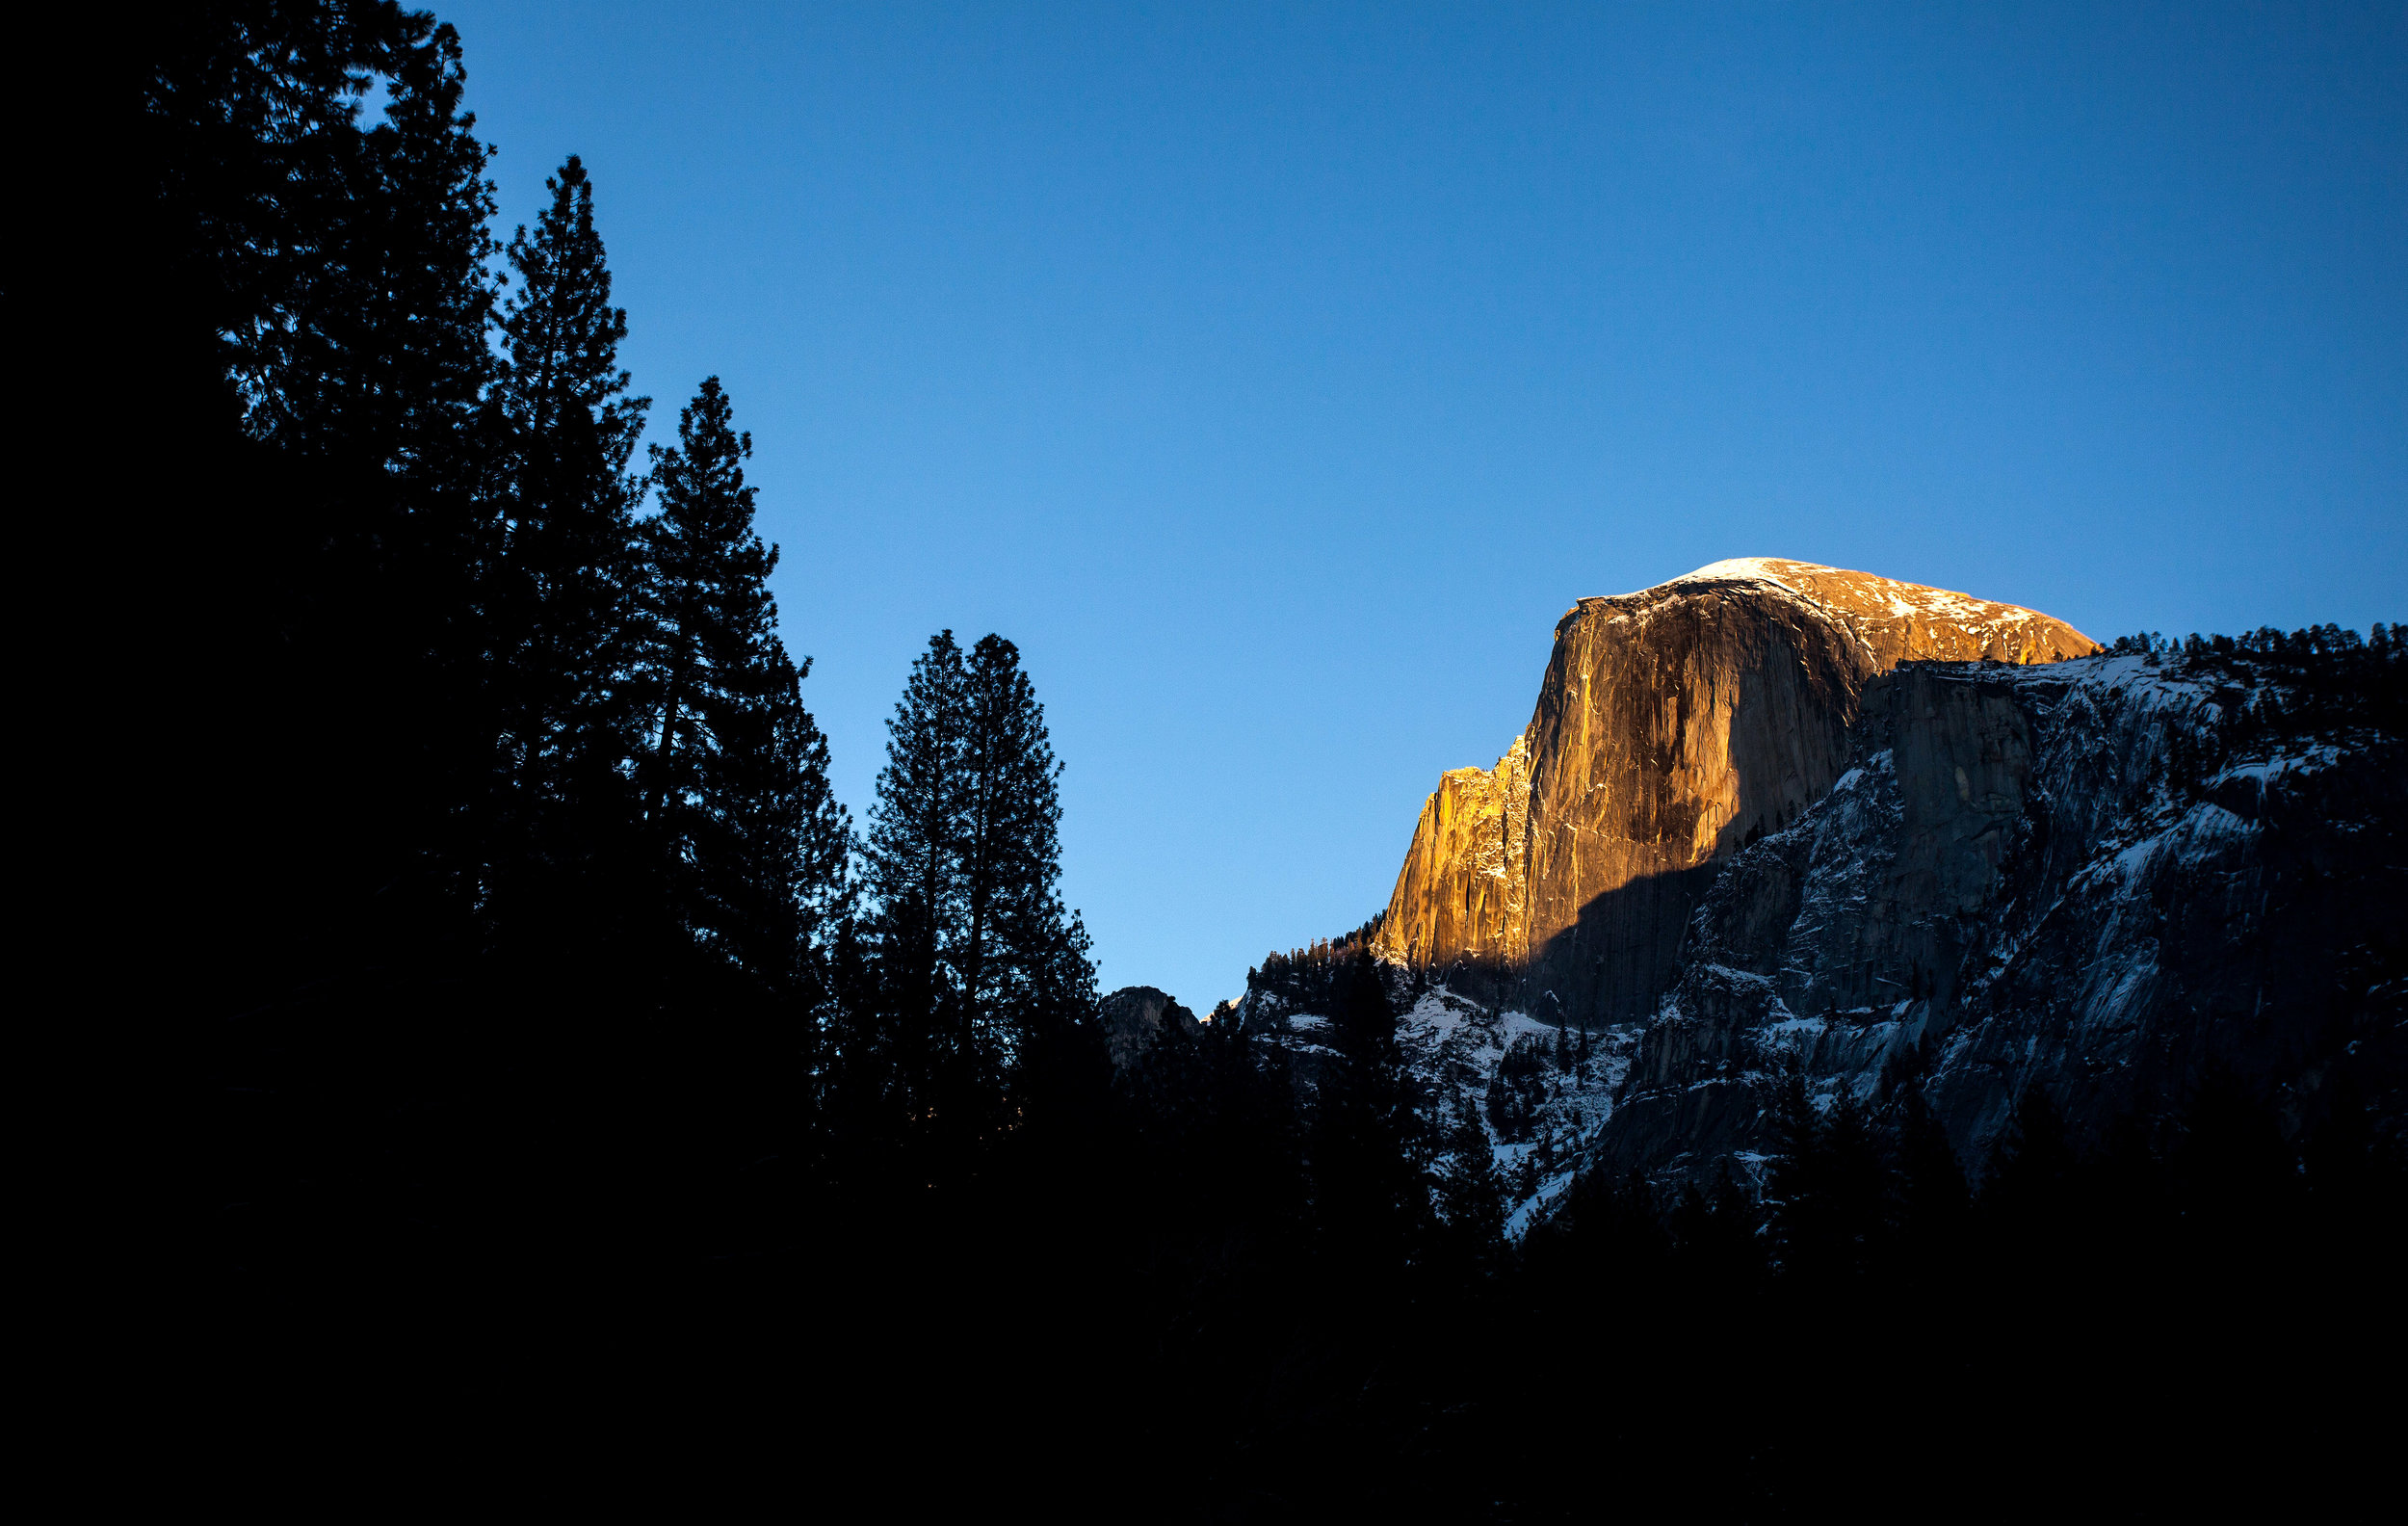 YOSEMITE, CA - DECEMBER 28: Half Dome is seen during sunset at the eastern end of Yosemite Valley on December 28, 2016 in Yosemite National Park, California. (Photo by Tim Bradbury/Copyright 2017)